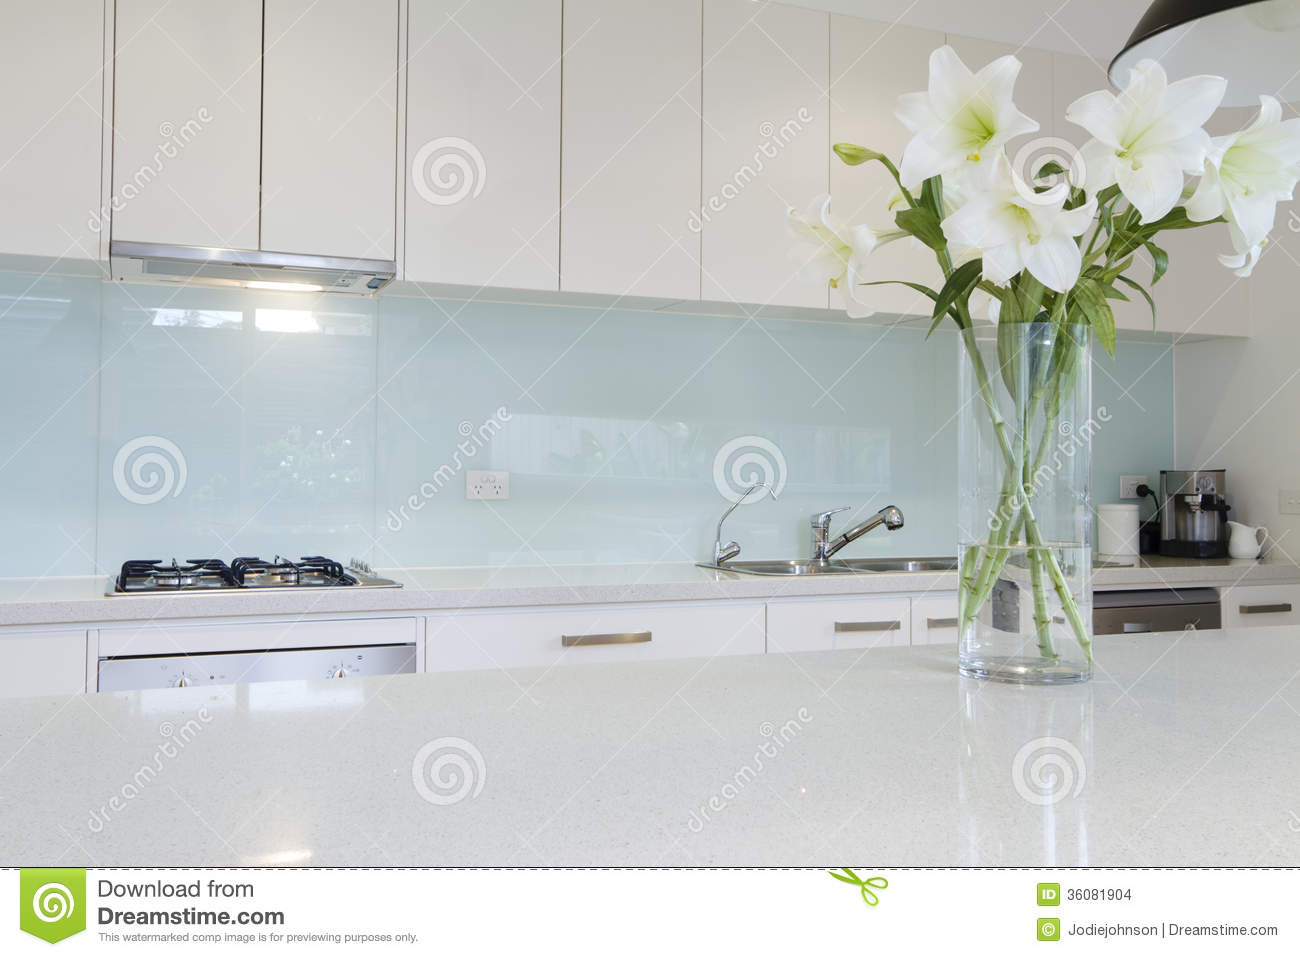 white kitchen bench cottage style cabinets flowers on stock photo image of detail decor